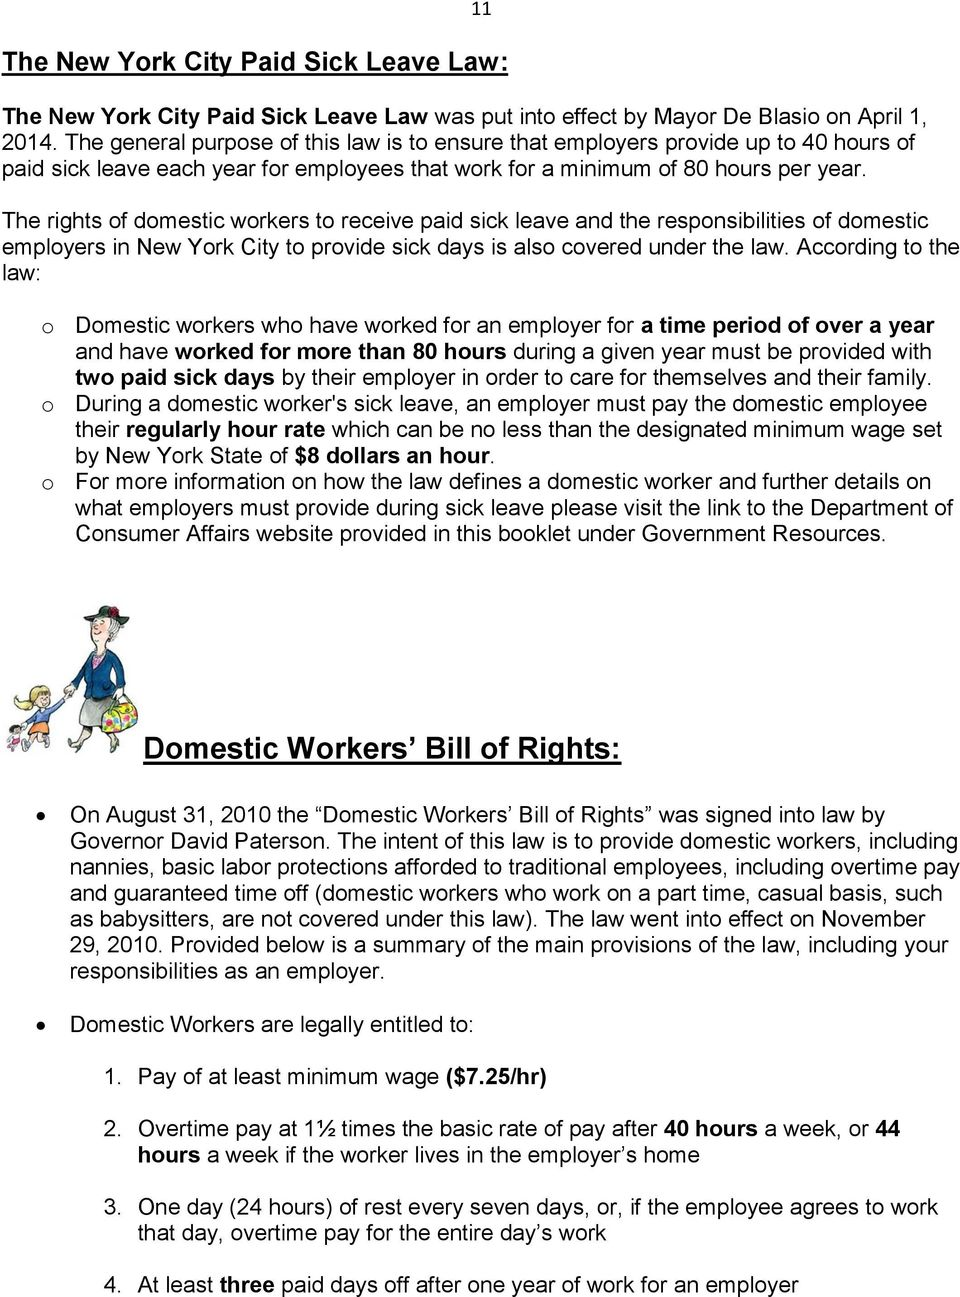 The rights of domestic workers to receive paid sick leave and the responsibilities of domestic employers in New York City to provide sick days is also covered under the law.